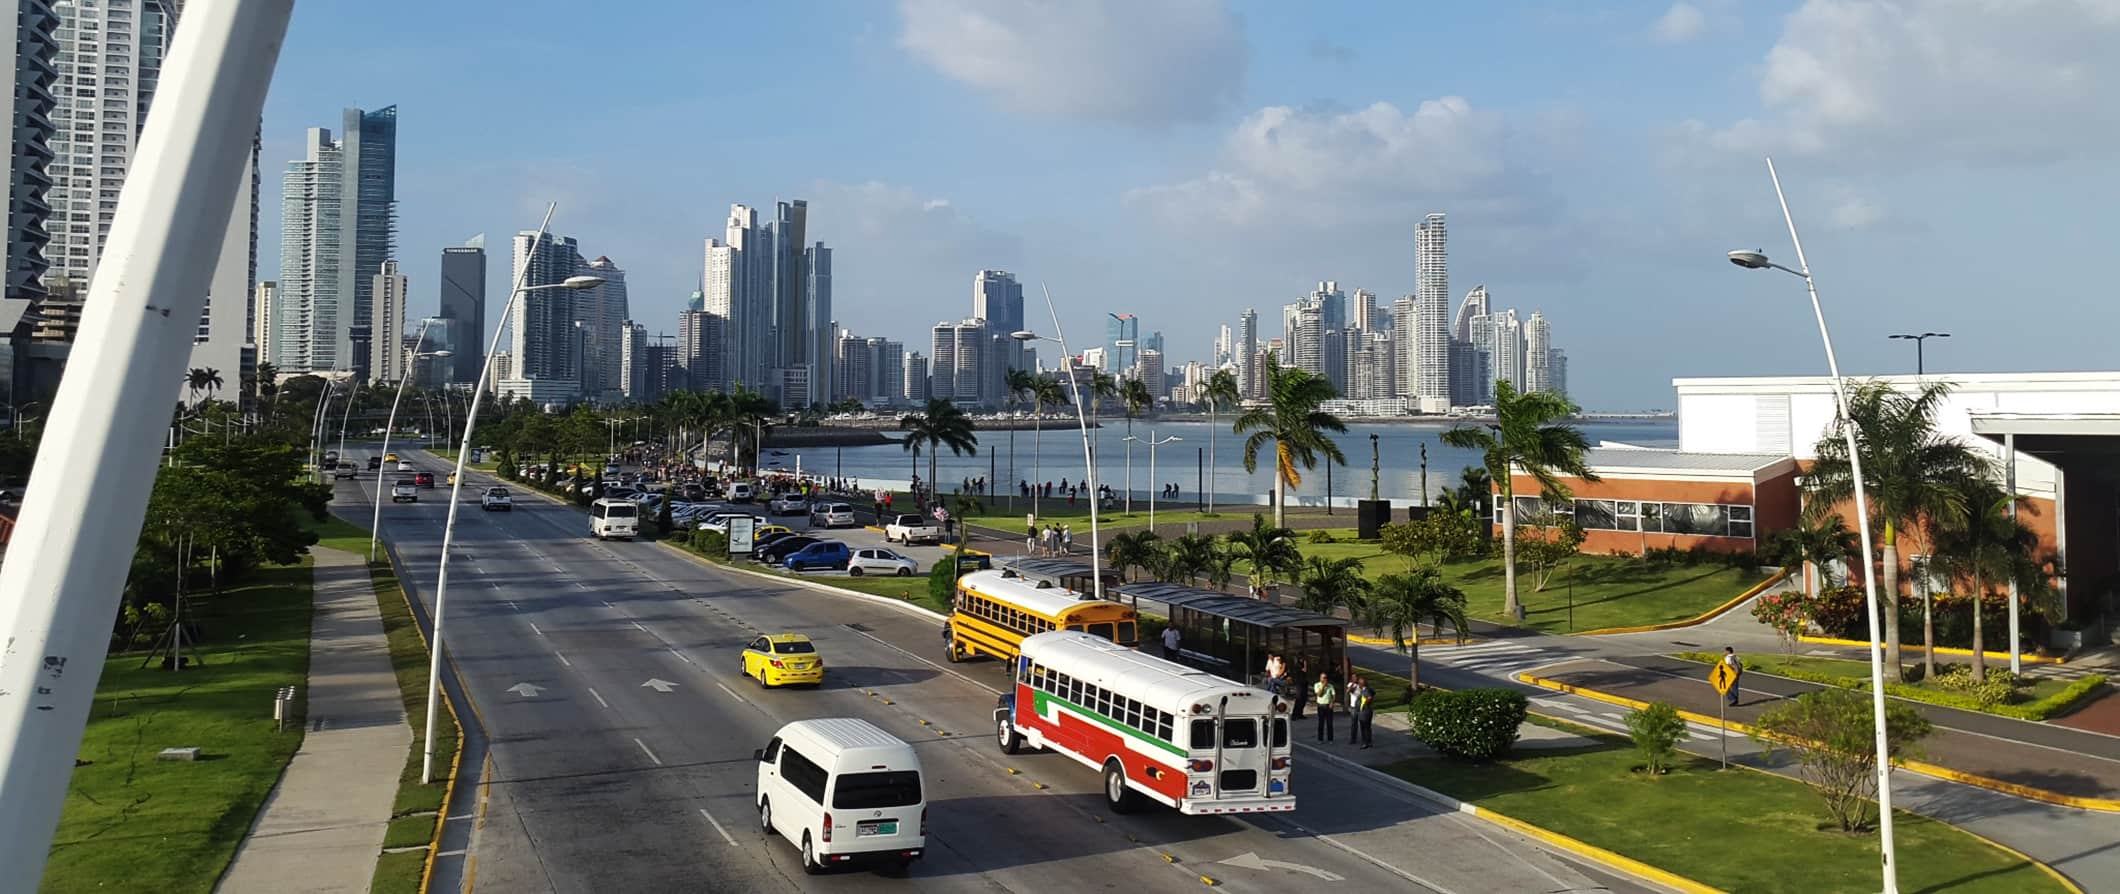 traffic and city skyline views in Panama City